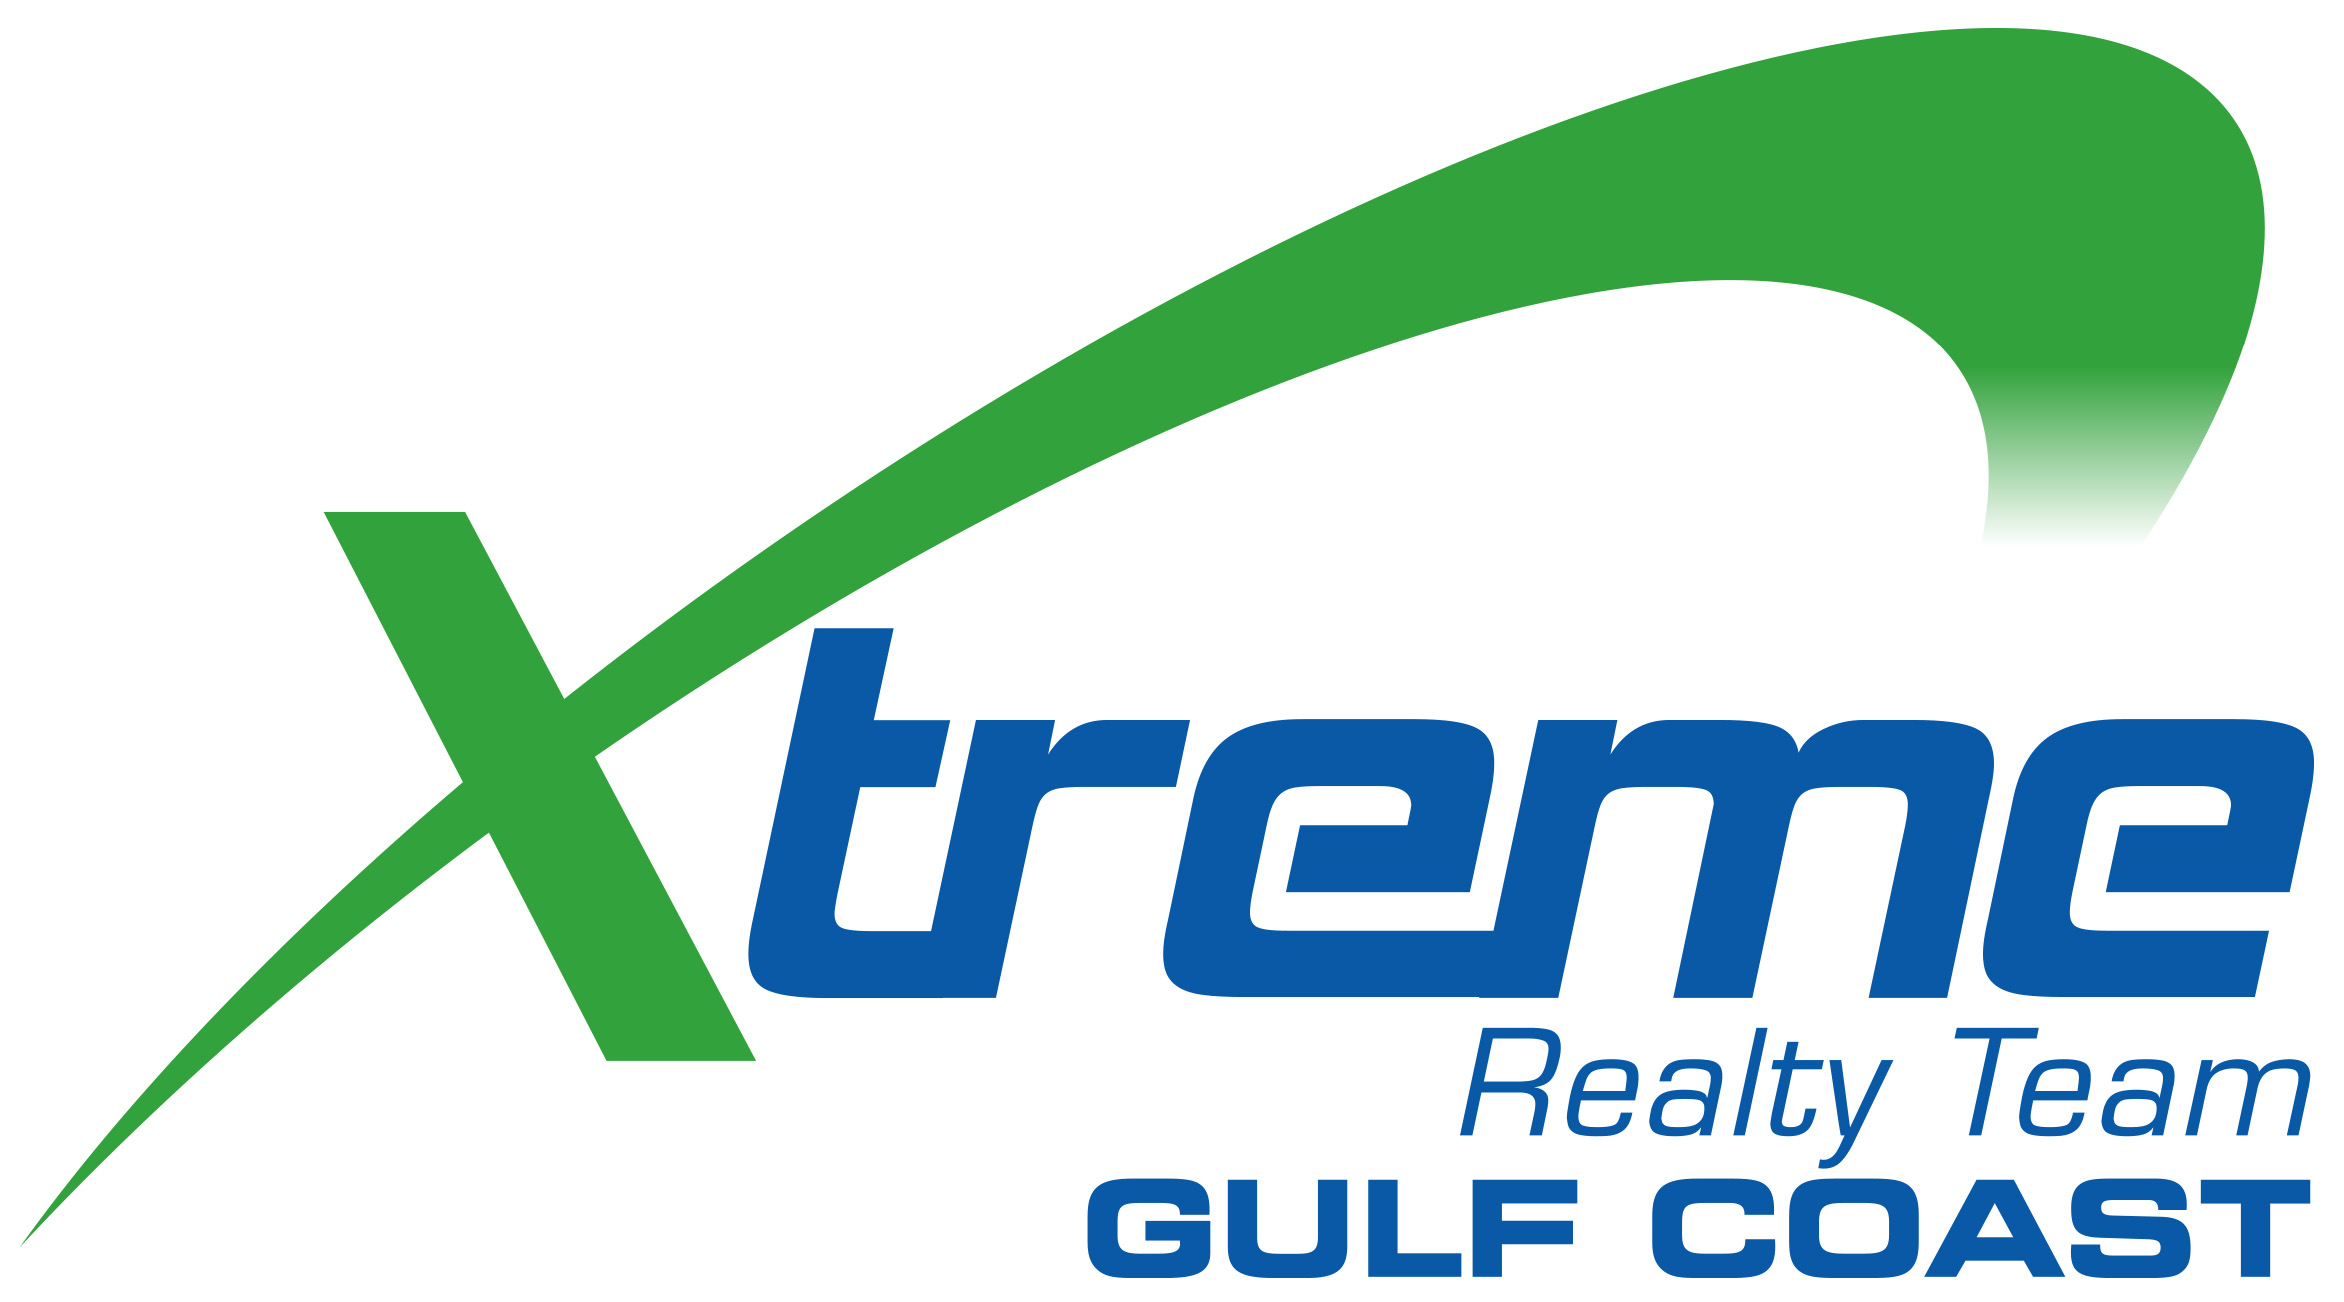 Xtreme Realty Team Gulf Coast